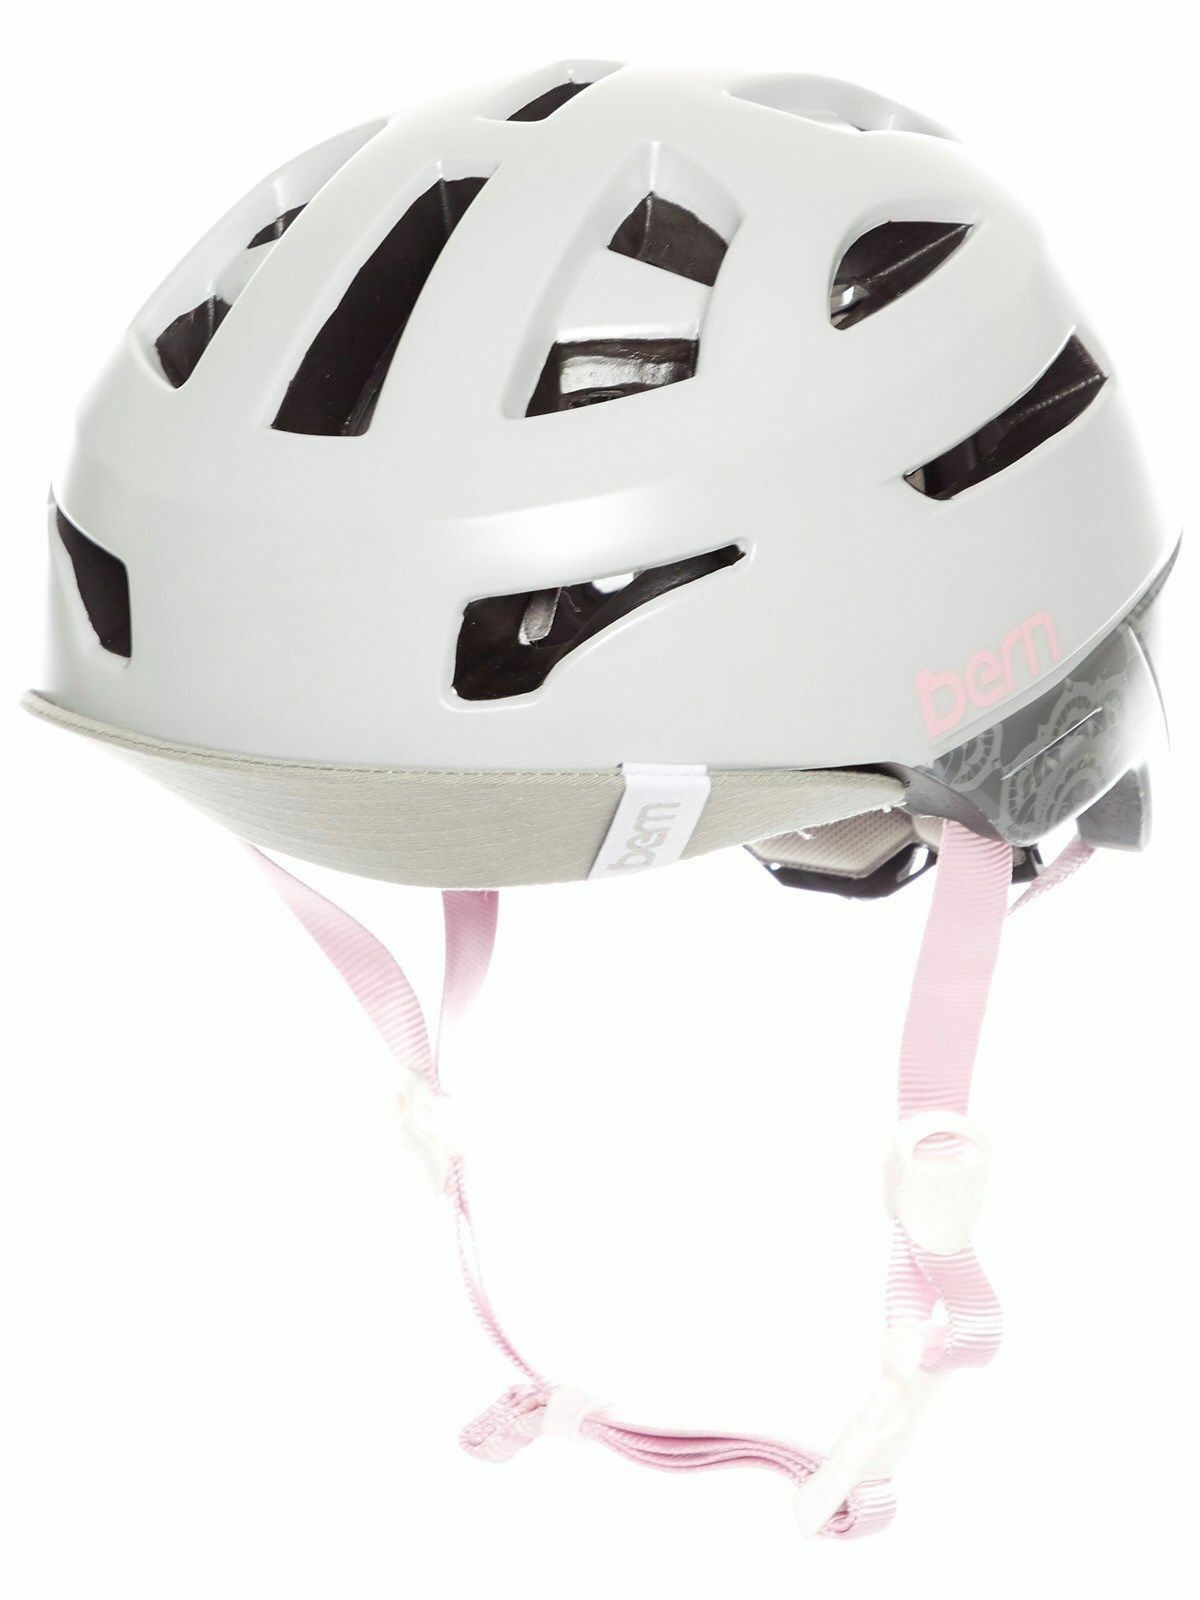 Bern parker mountain bike mtb cycling  bike helmet matte satin grey s m l  high quality genuine